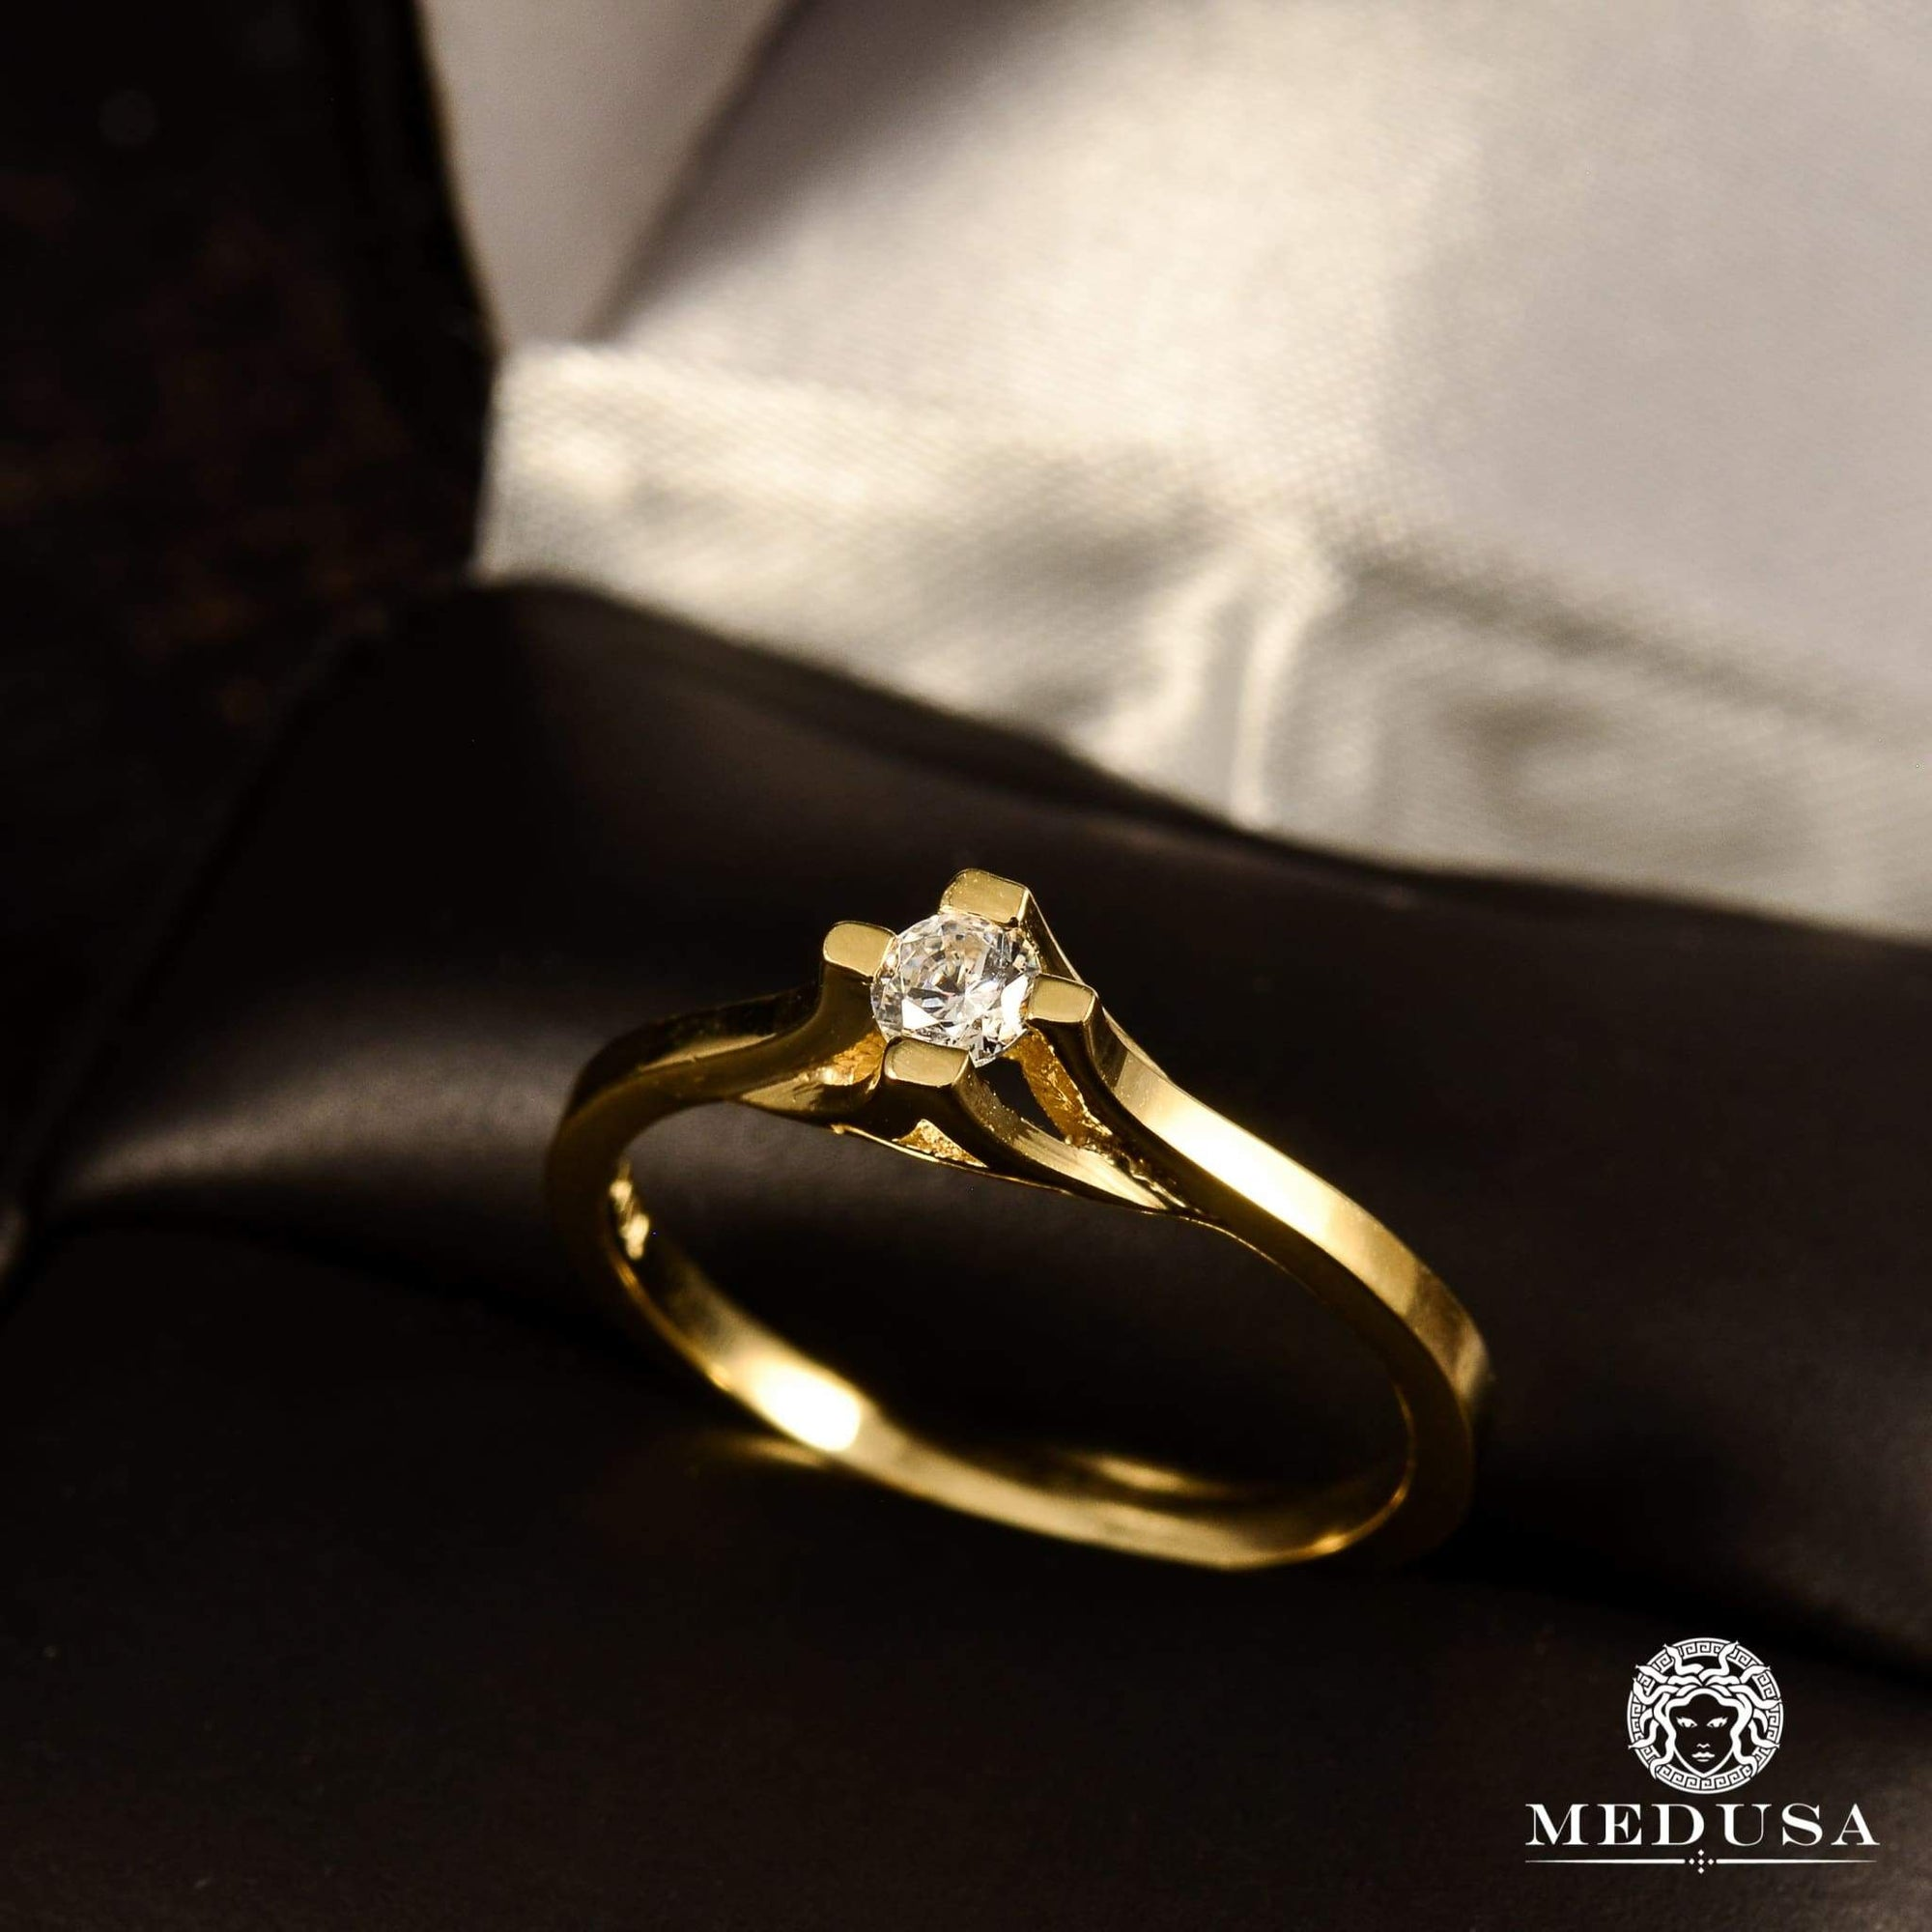 Bague à Diamants en Or 14K | Bague Fiançaille Solitaire F4 - MA0695